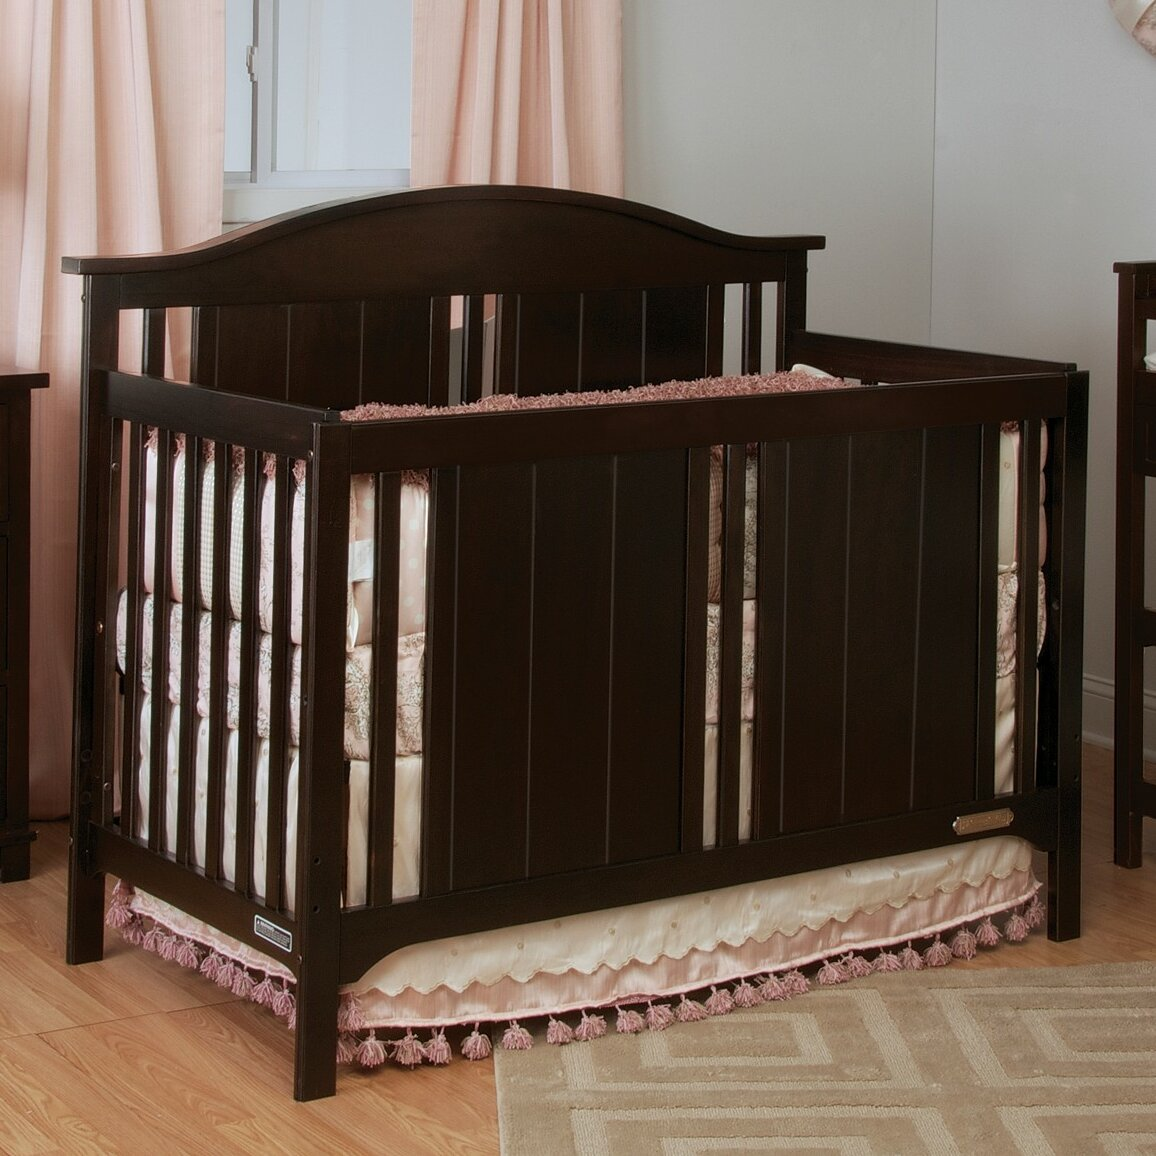 rc charm crib cribs craft together collections convertible s sophisticated of large timeless child bambi camden baby size with absorbing